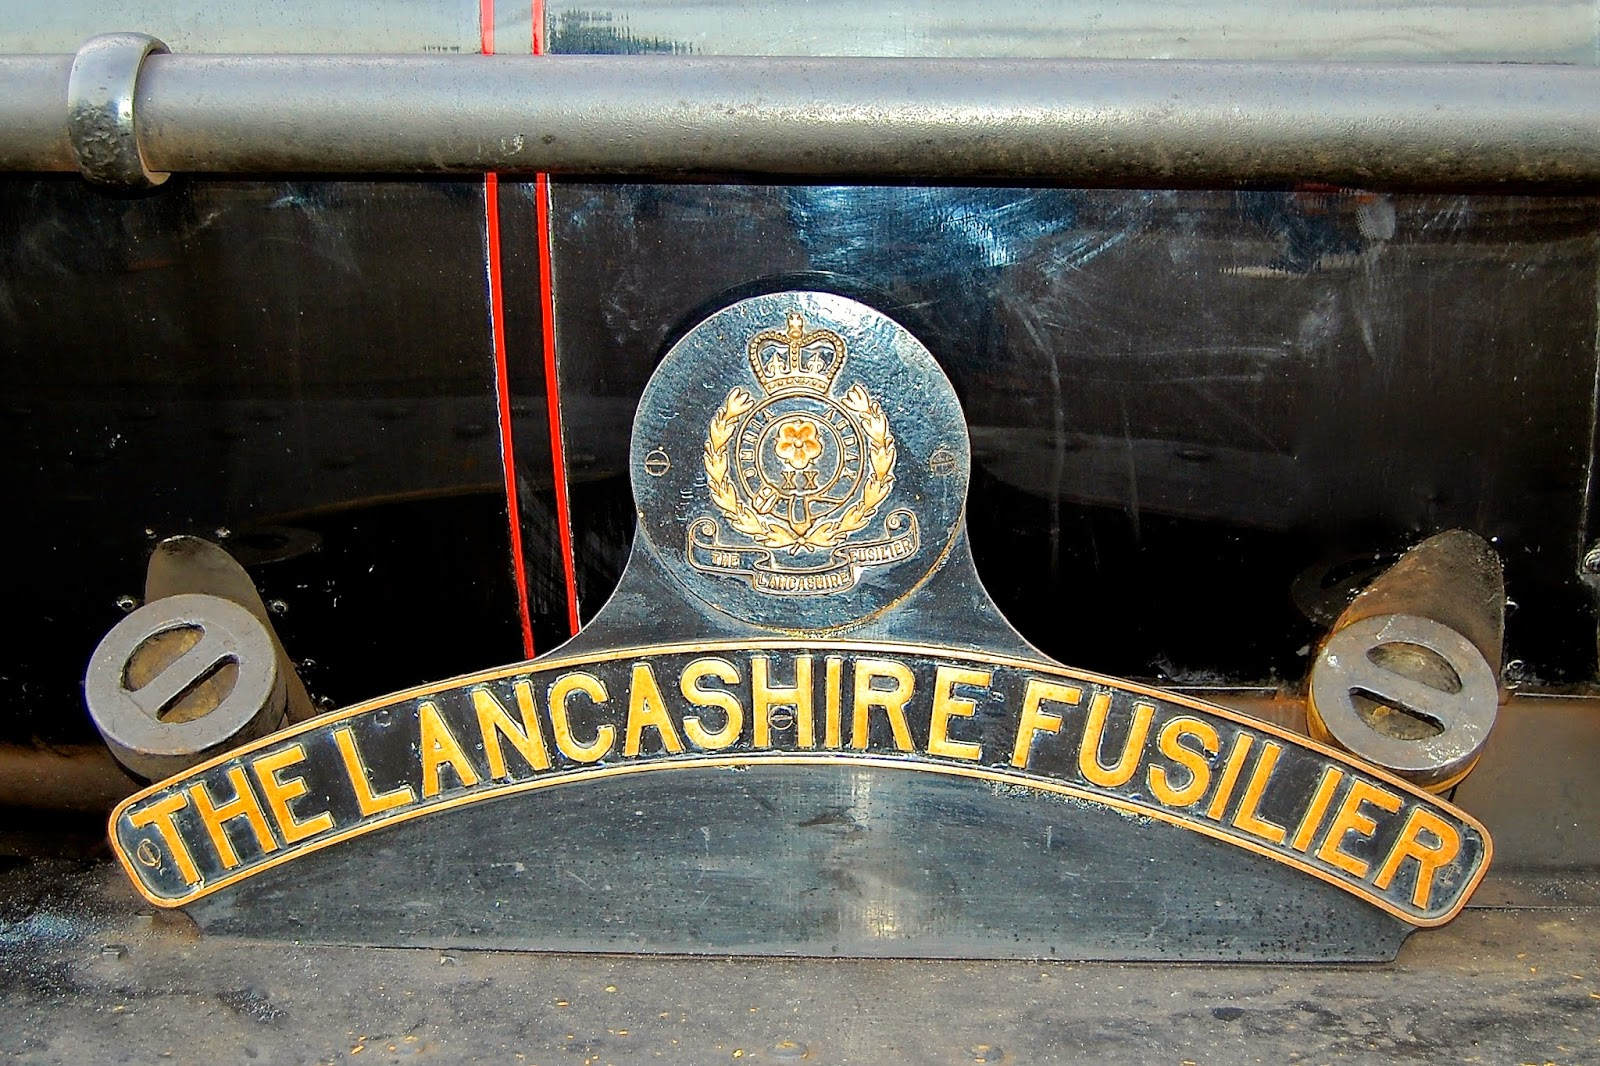 The Lancashire Fusilier engine for the Jacobite Steam Train